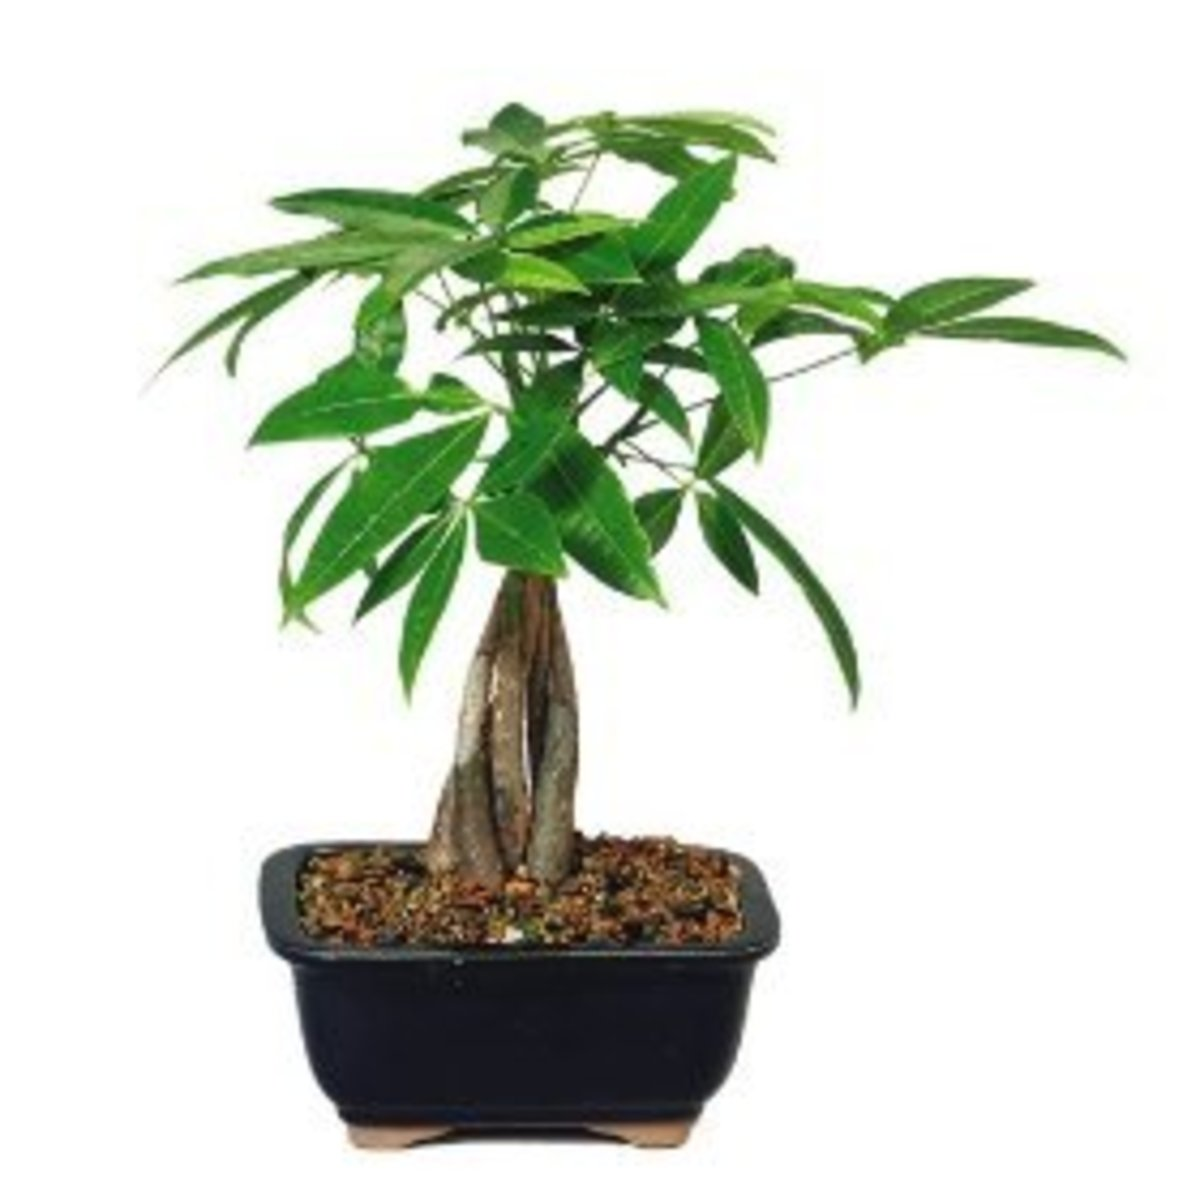 The Money tree plant